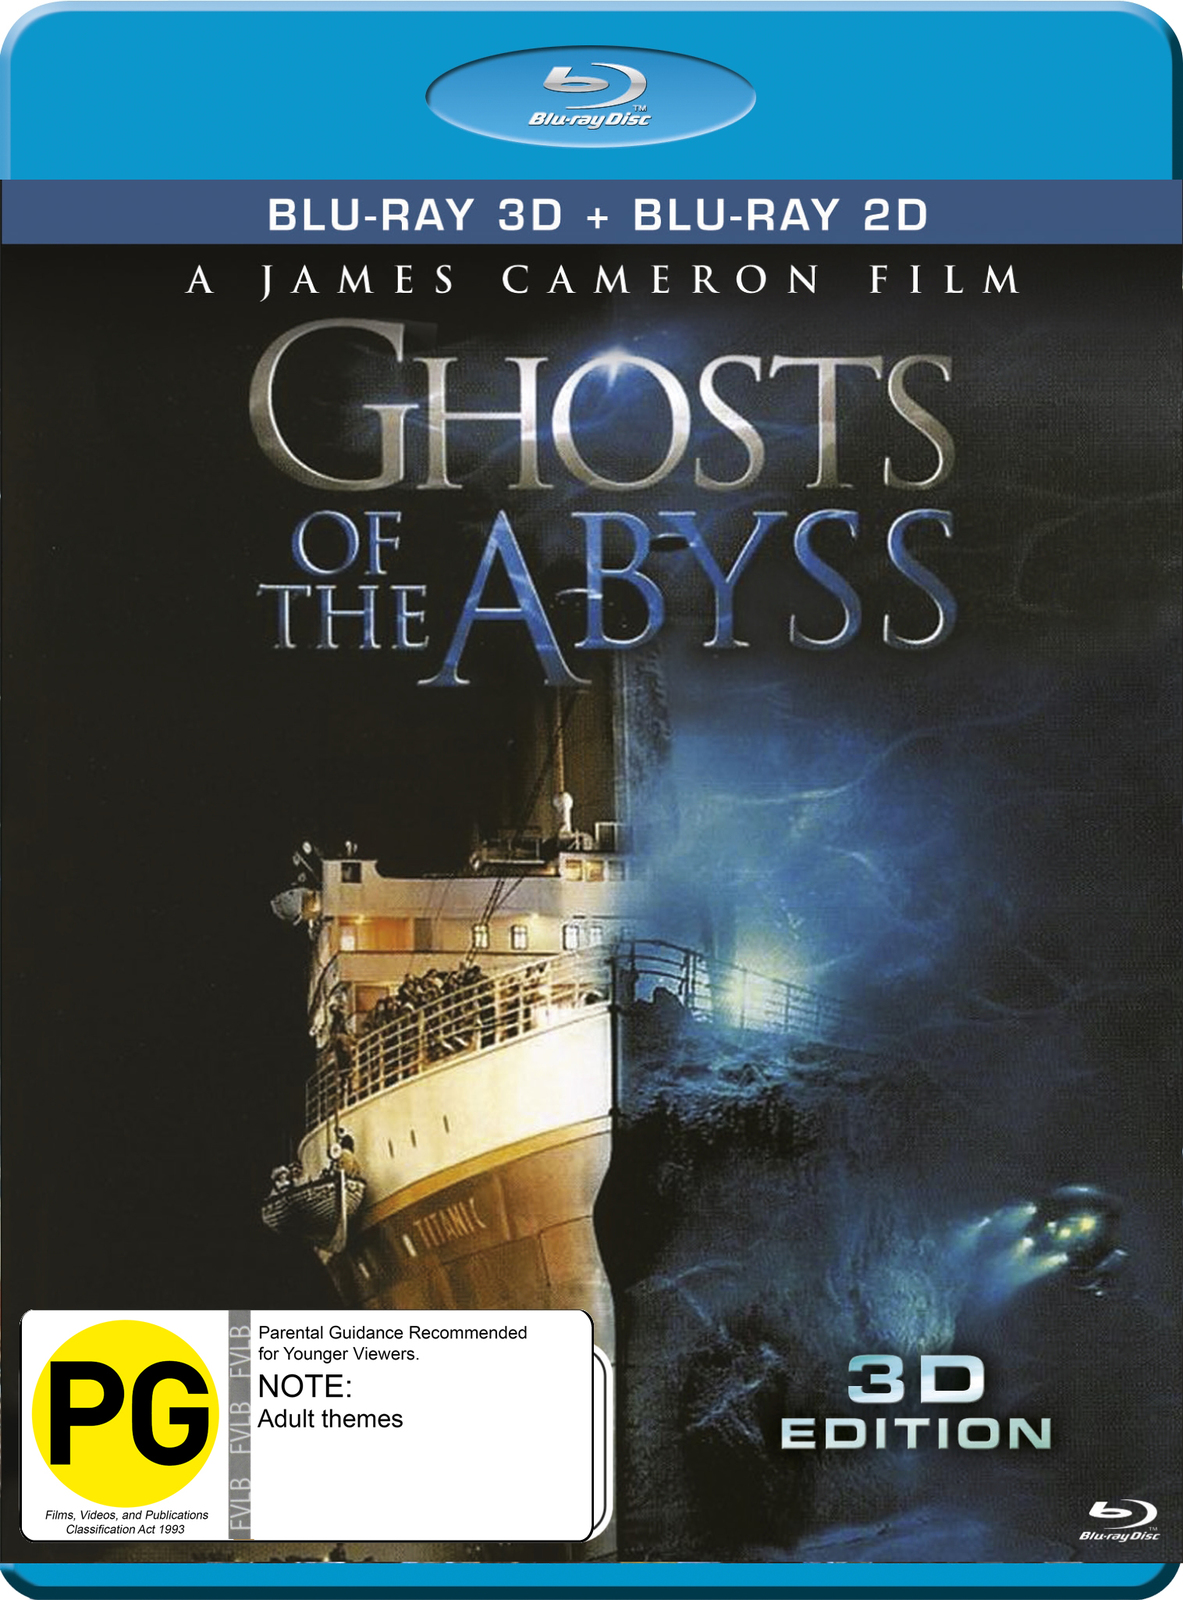 Ghosts Of The Abyss on Blu-ray, 3D Blu-ray image